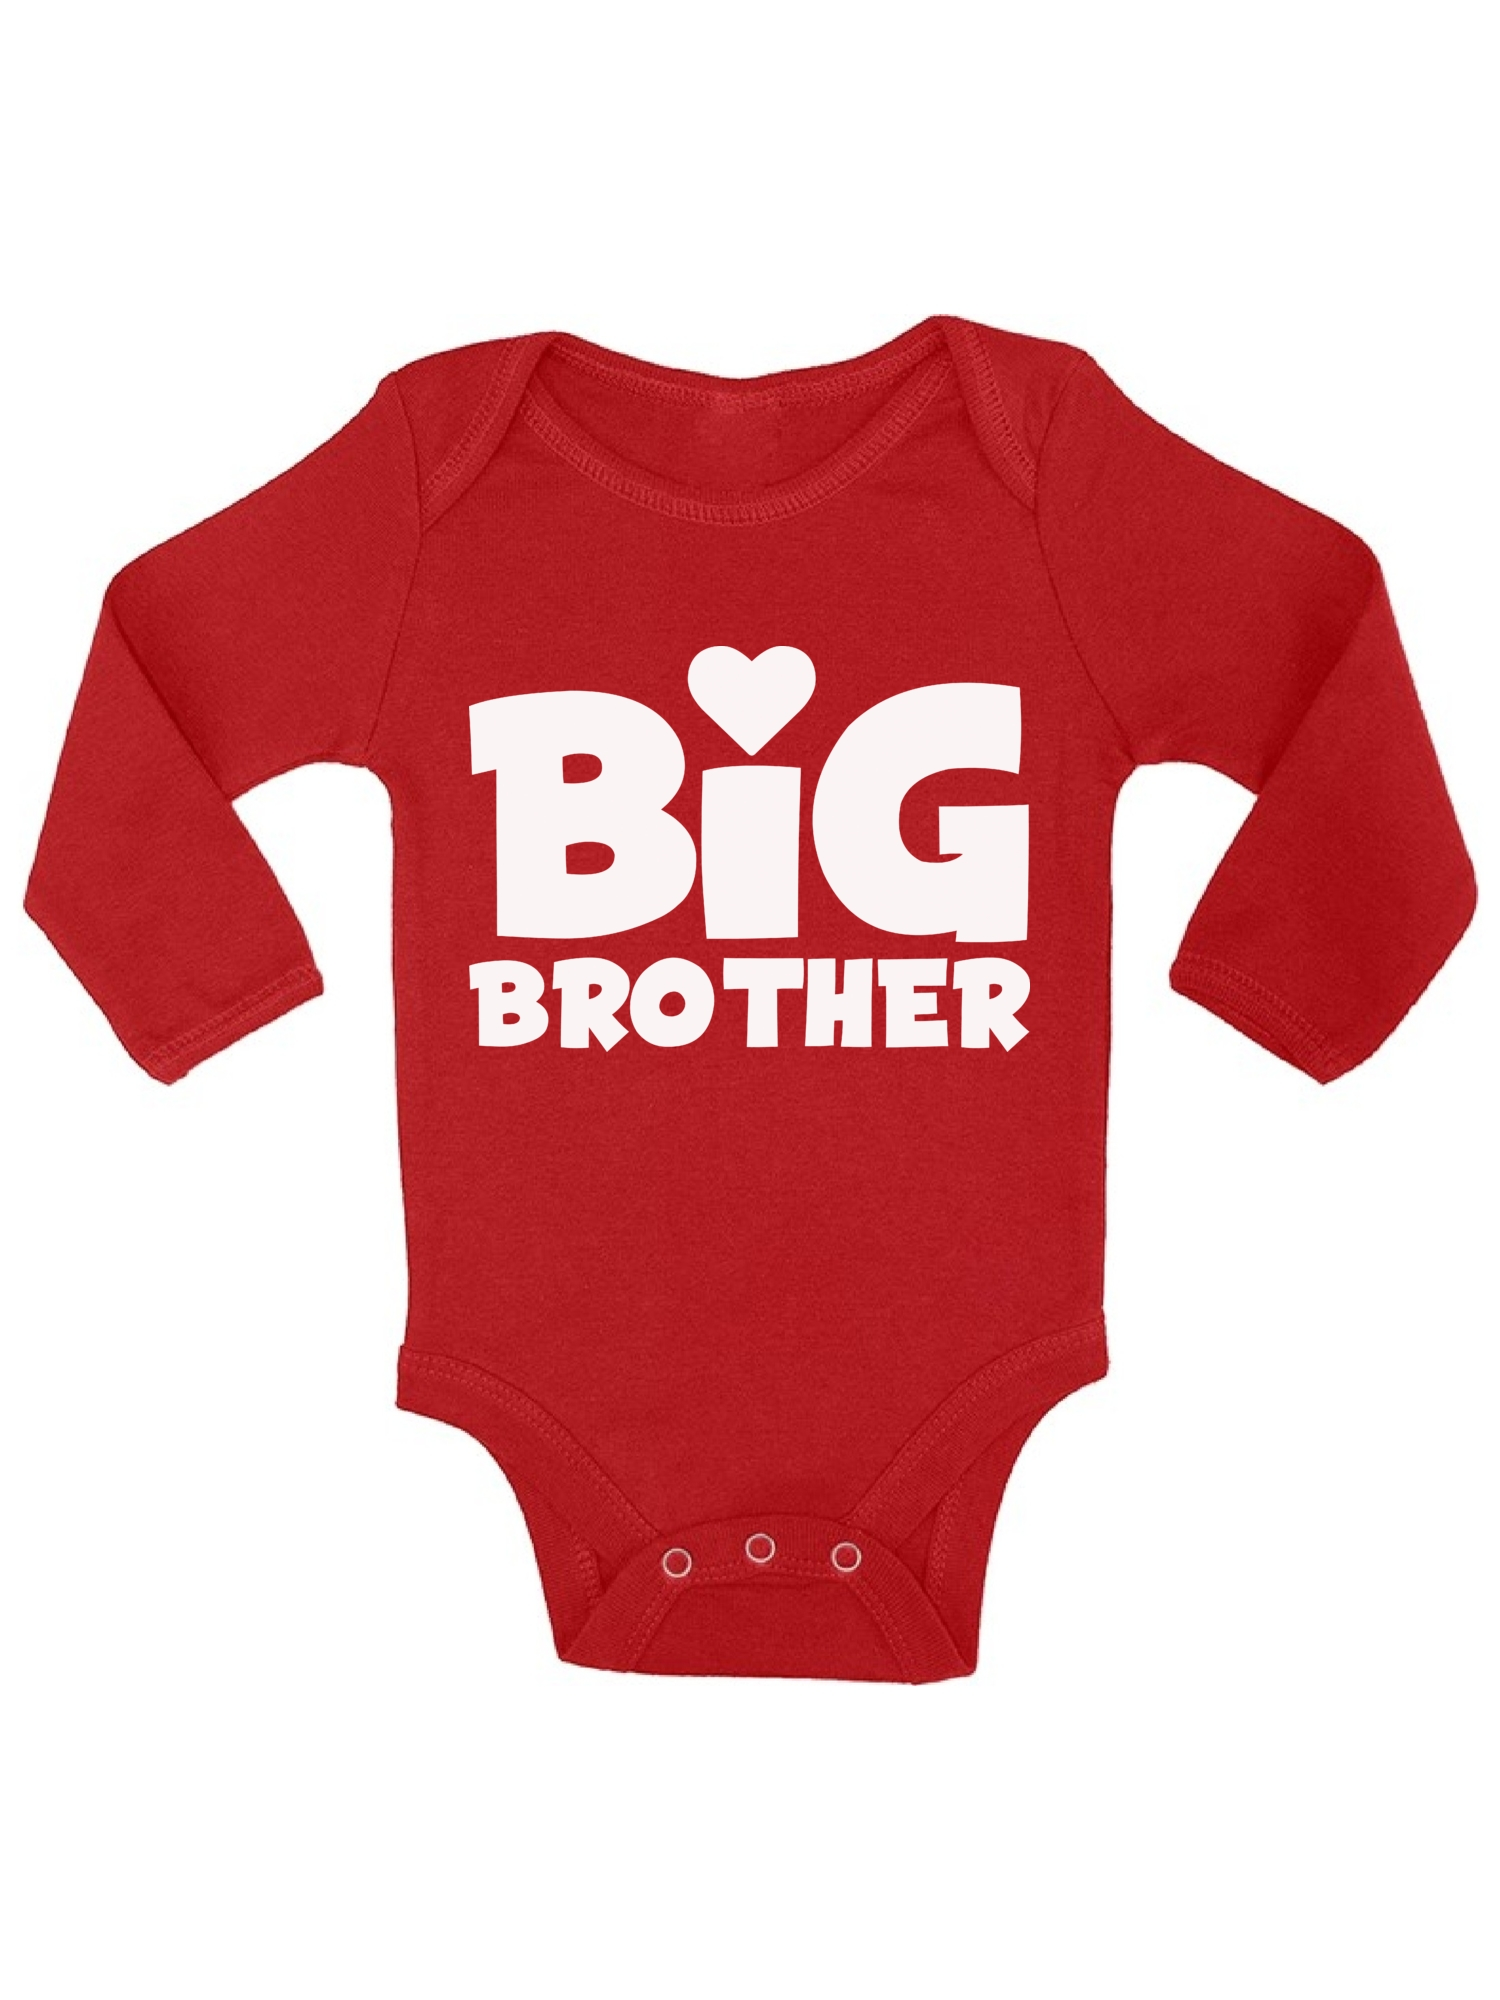 Awkward Styles Bodysuit for Little One Train Baby Clothing for Boys Big Brother Outfit